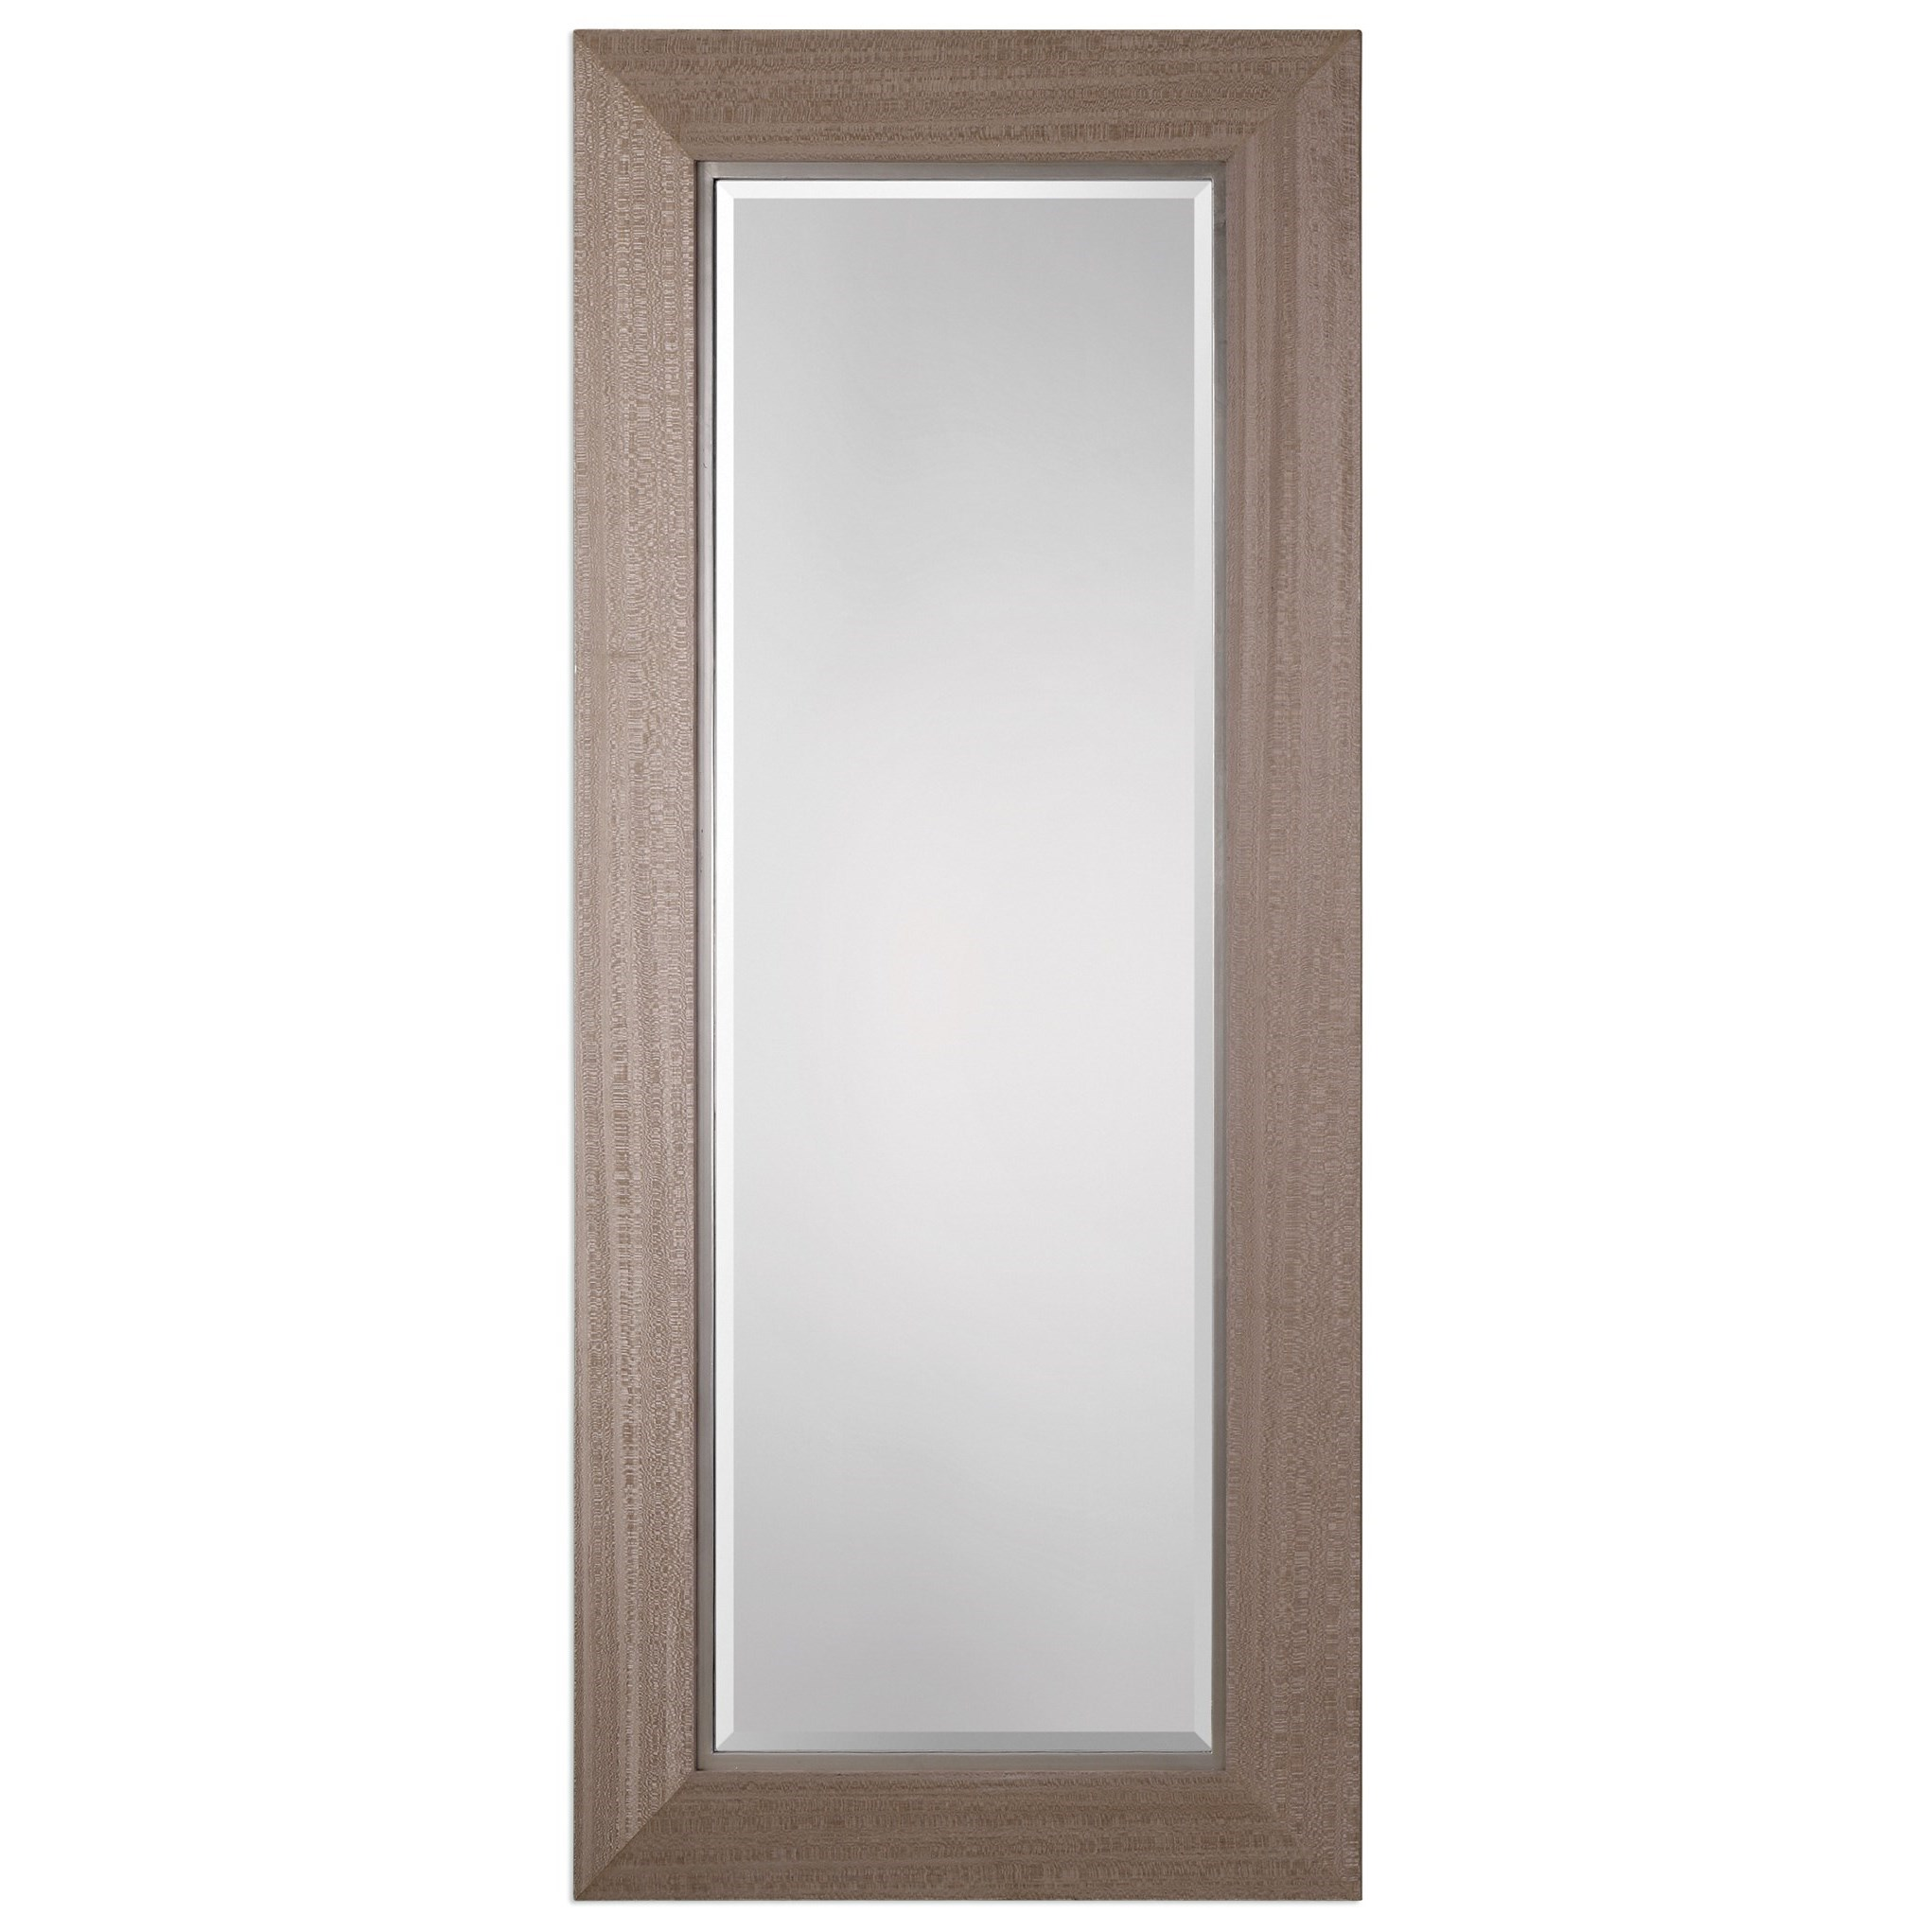 Uttermost Mirrors Pallister - Item Number: 09174